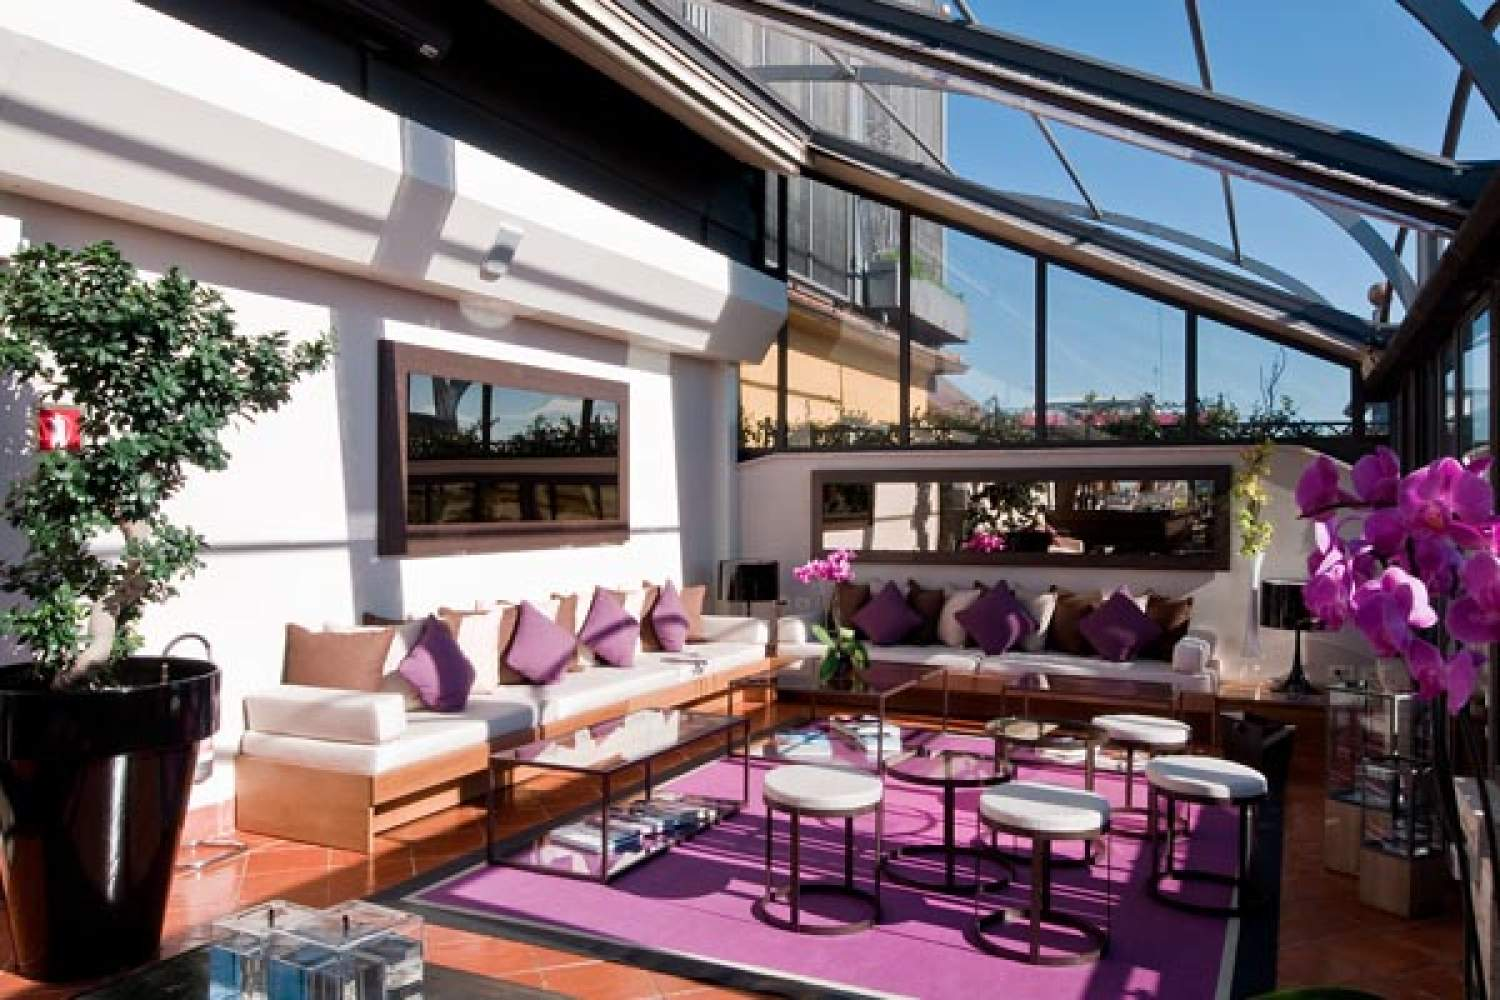 Terrace at the Sofitel hotel, Rome